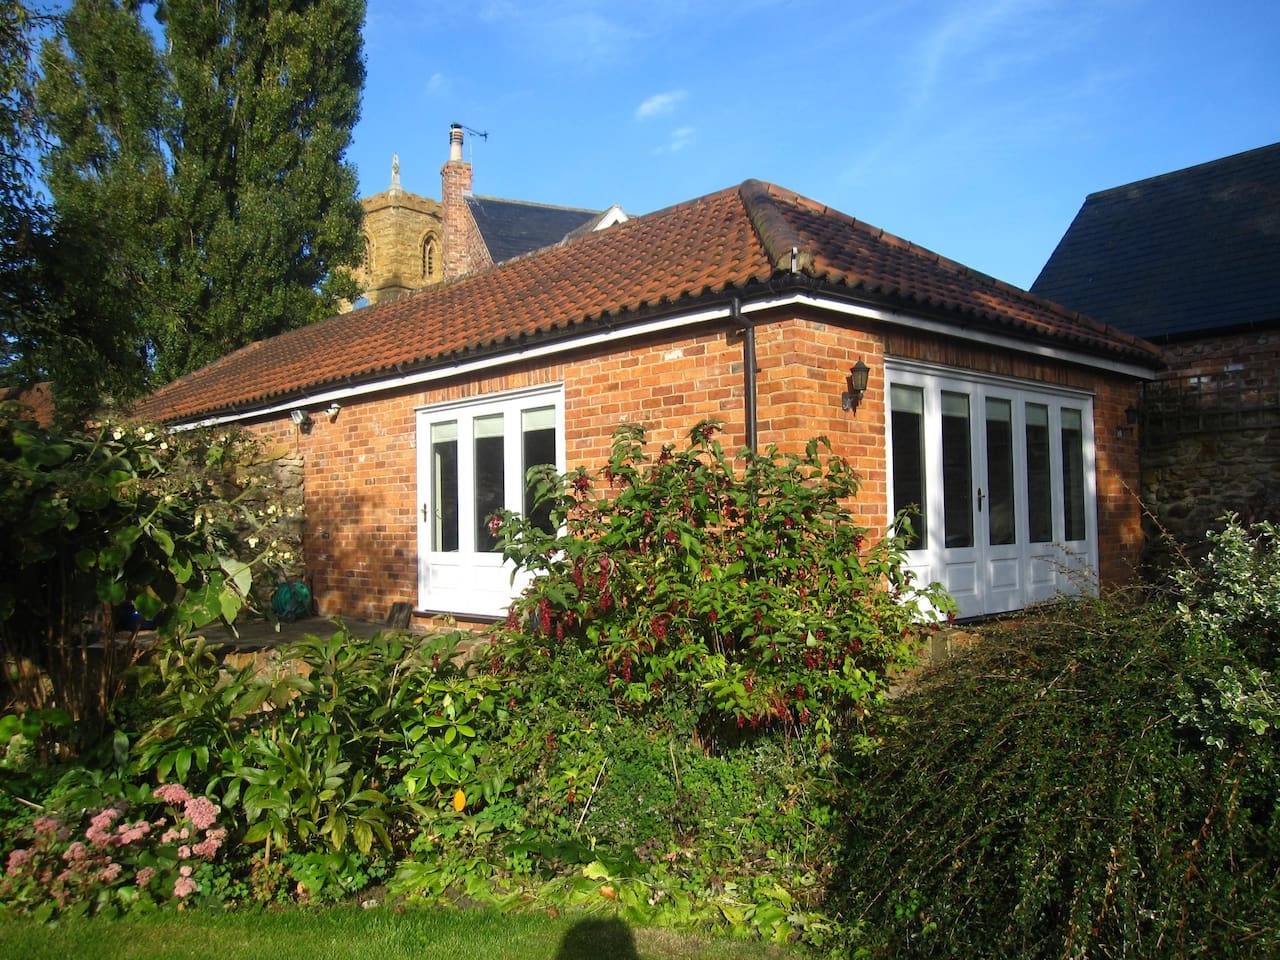 Independent light studio overlooking the garden and separate from the main house.